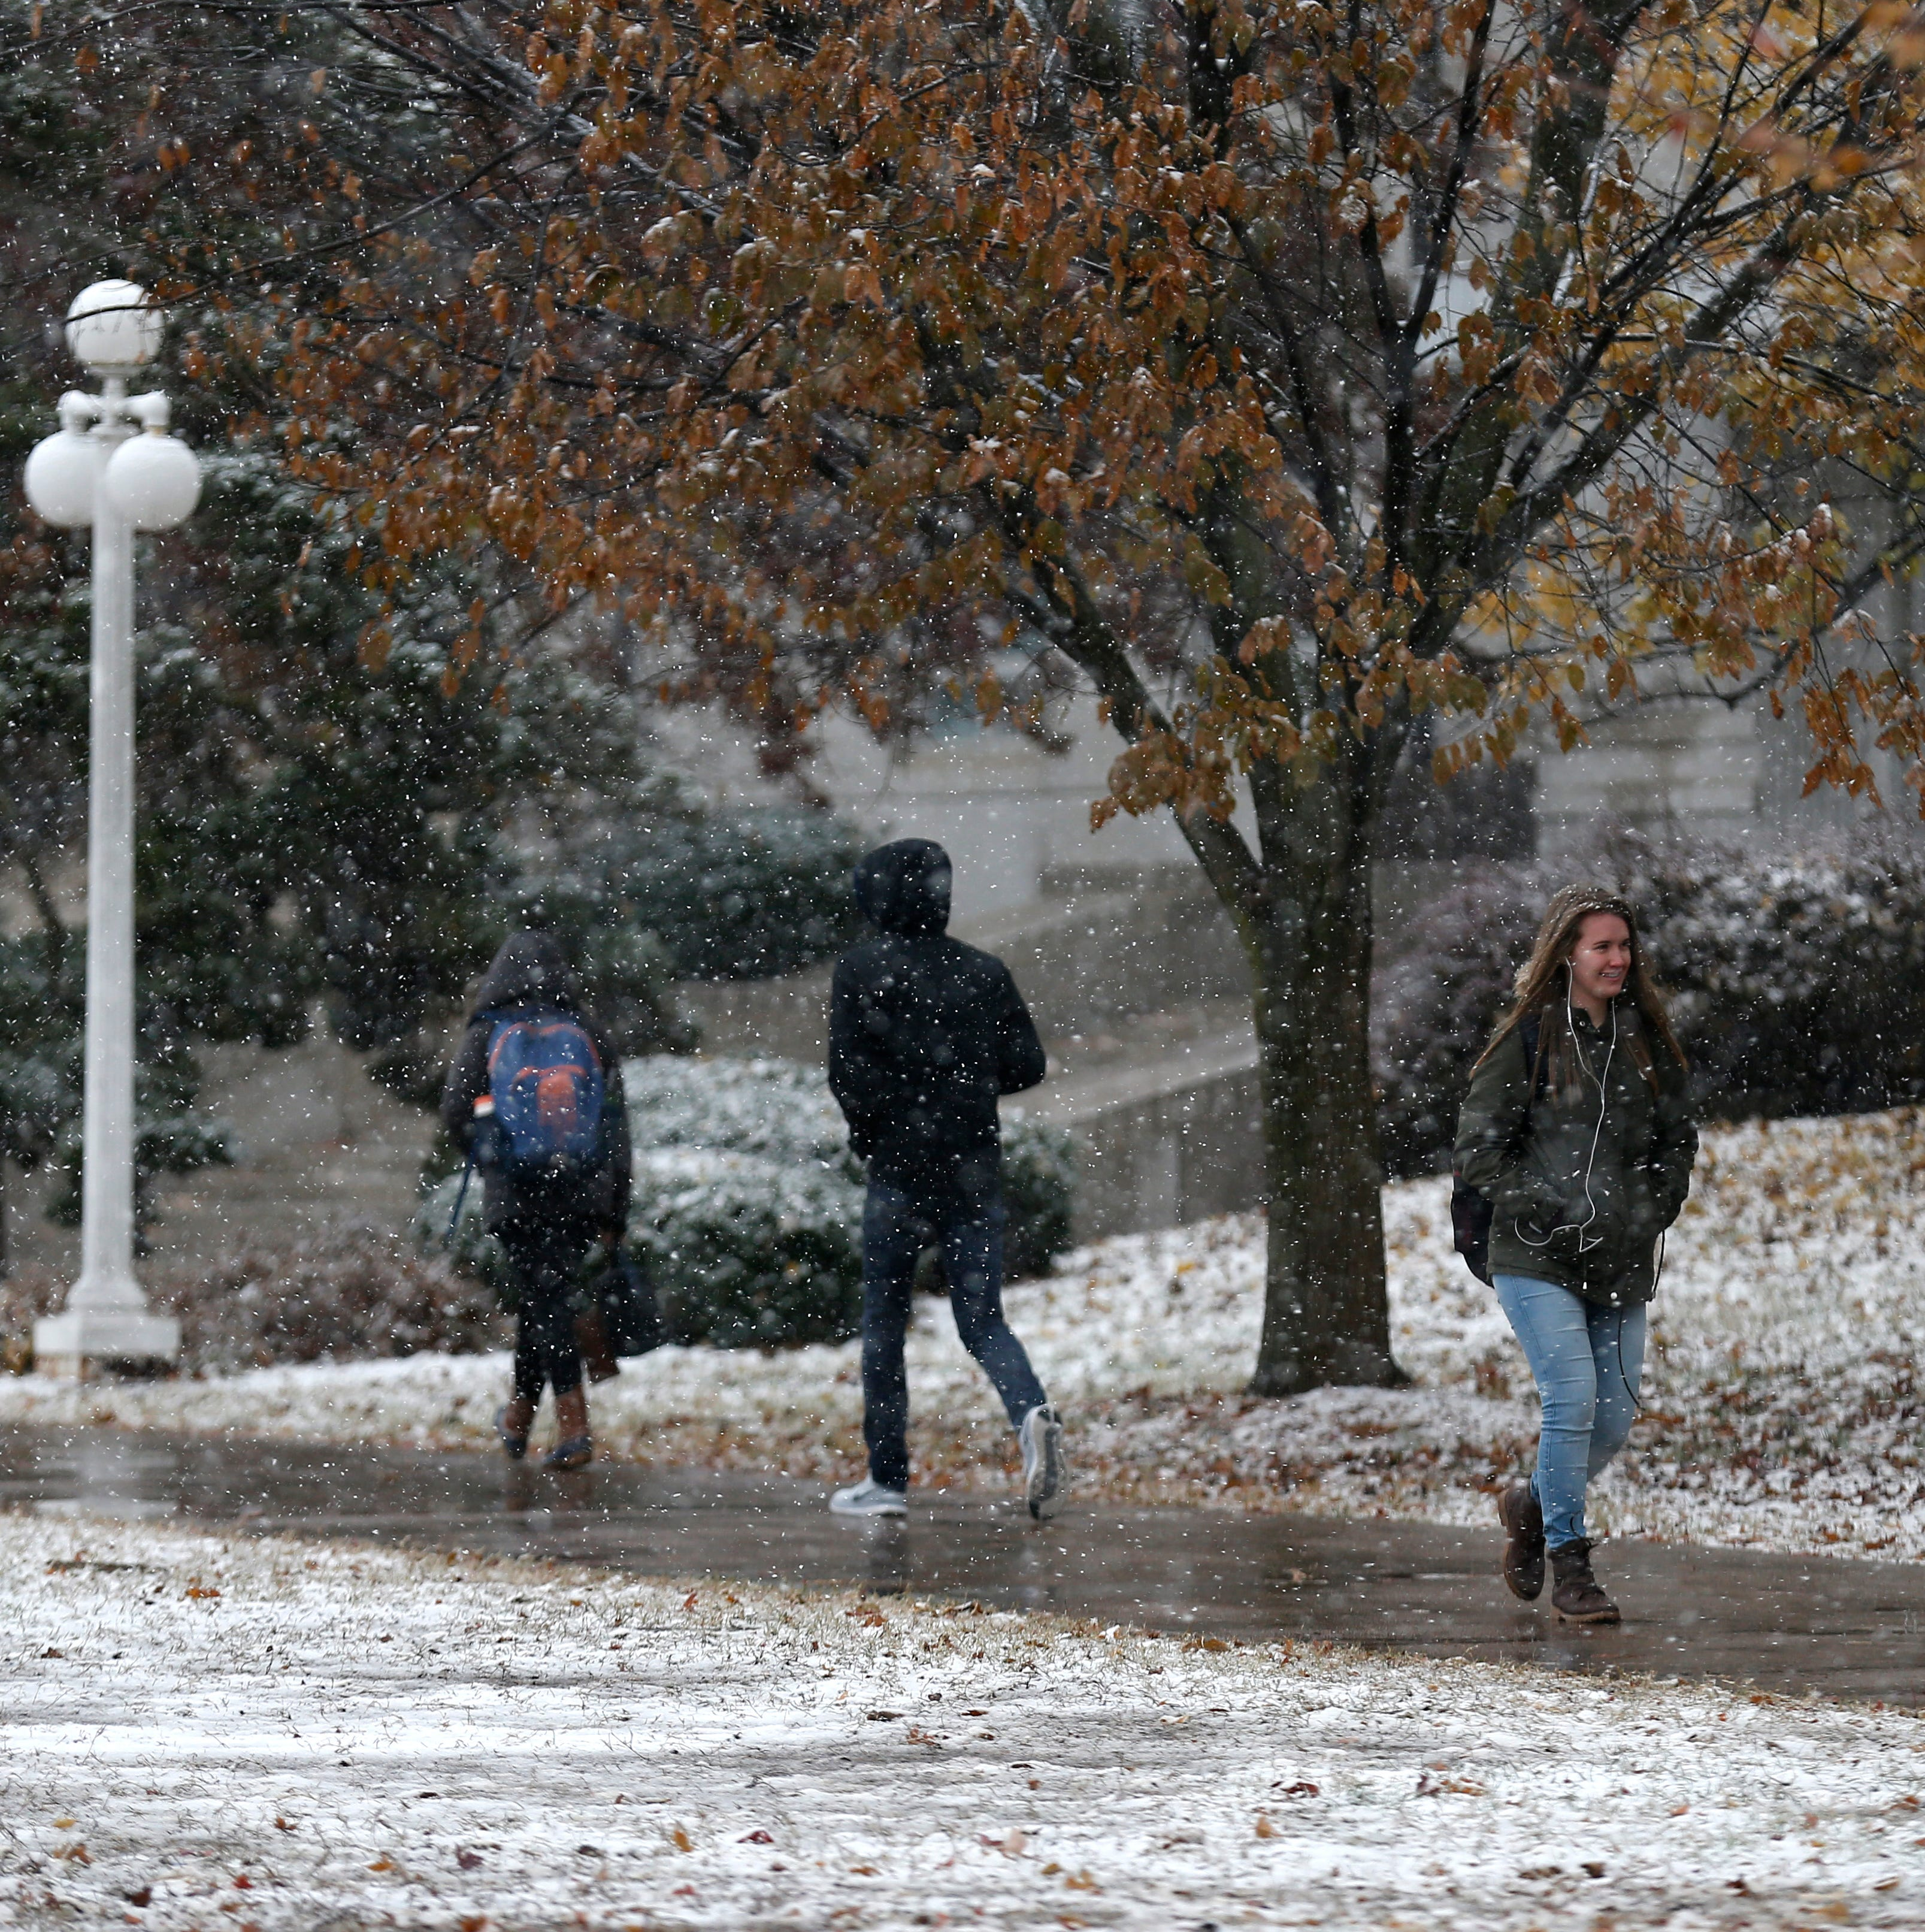 Springfield ties a record after 1.5 inches of snow fall on Monday